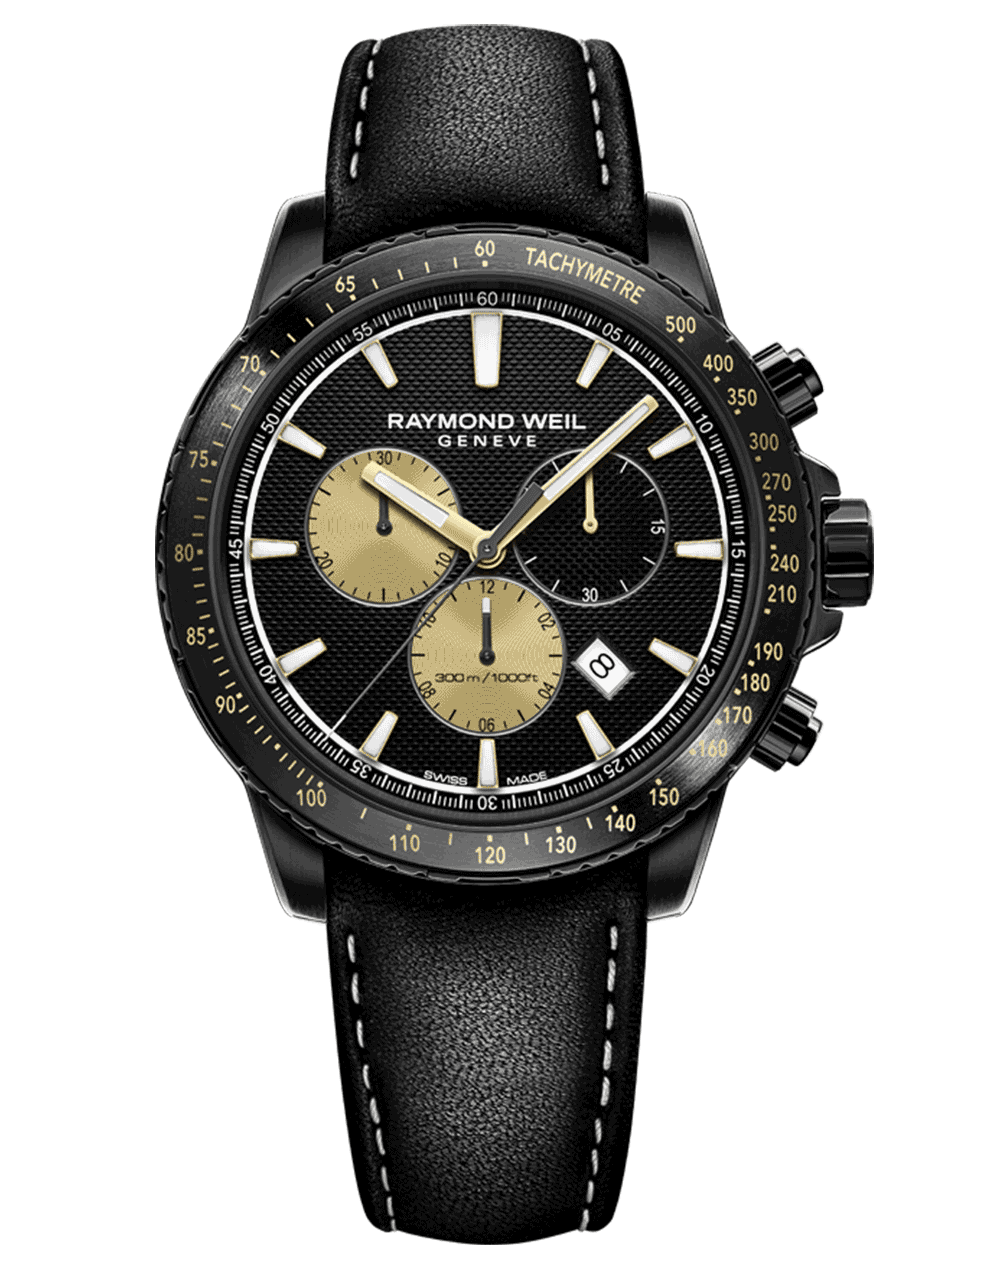 Image for Tango 300 Marshall Amplification Limited Edition Chronograph